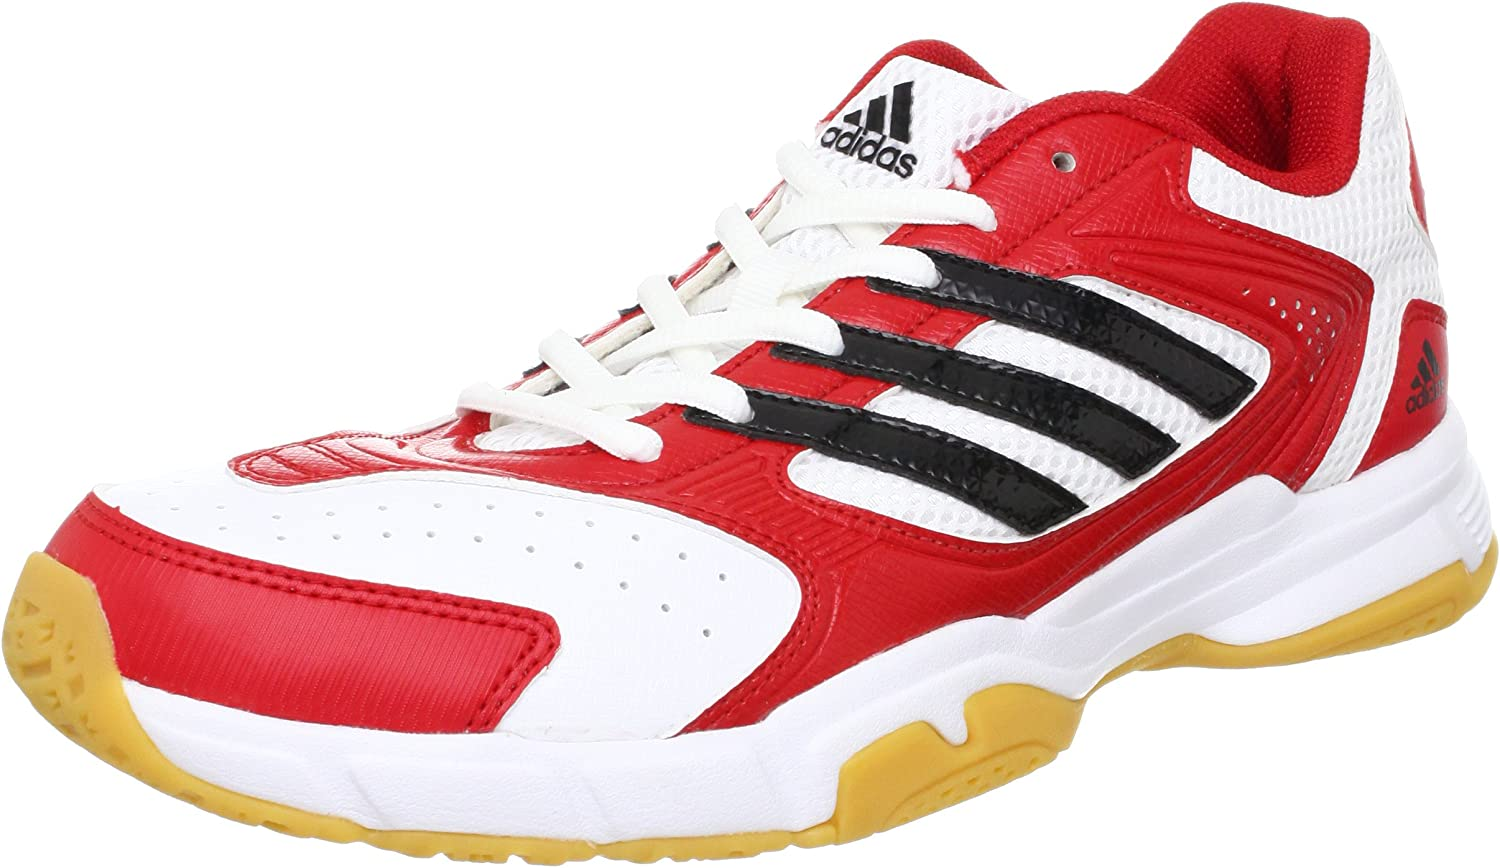 Adidas Performance Herren Badmintonschuhe Feather Replique Halle Weiss rot (908) 46EU